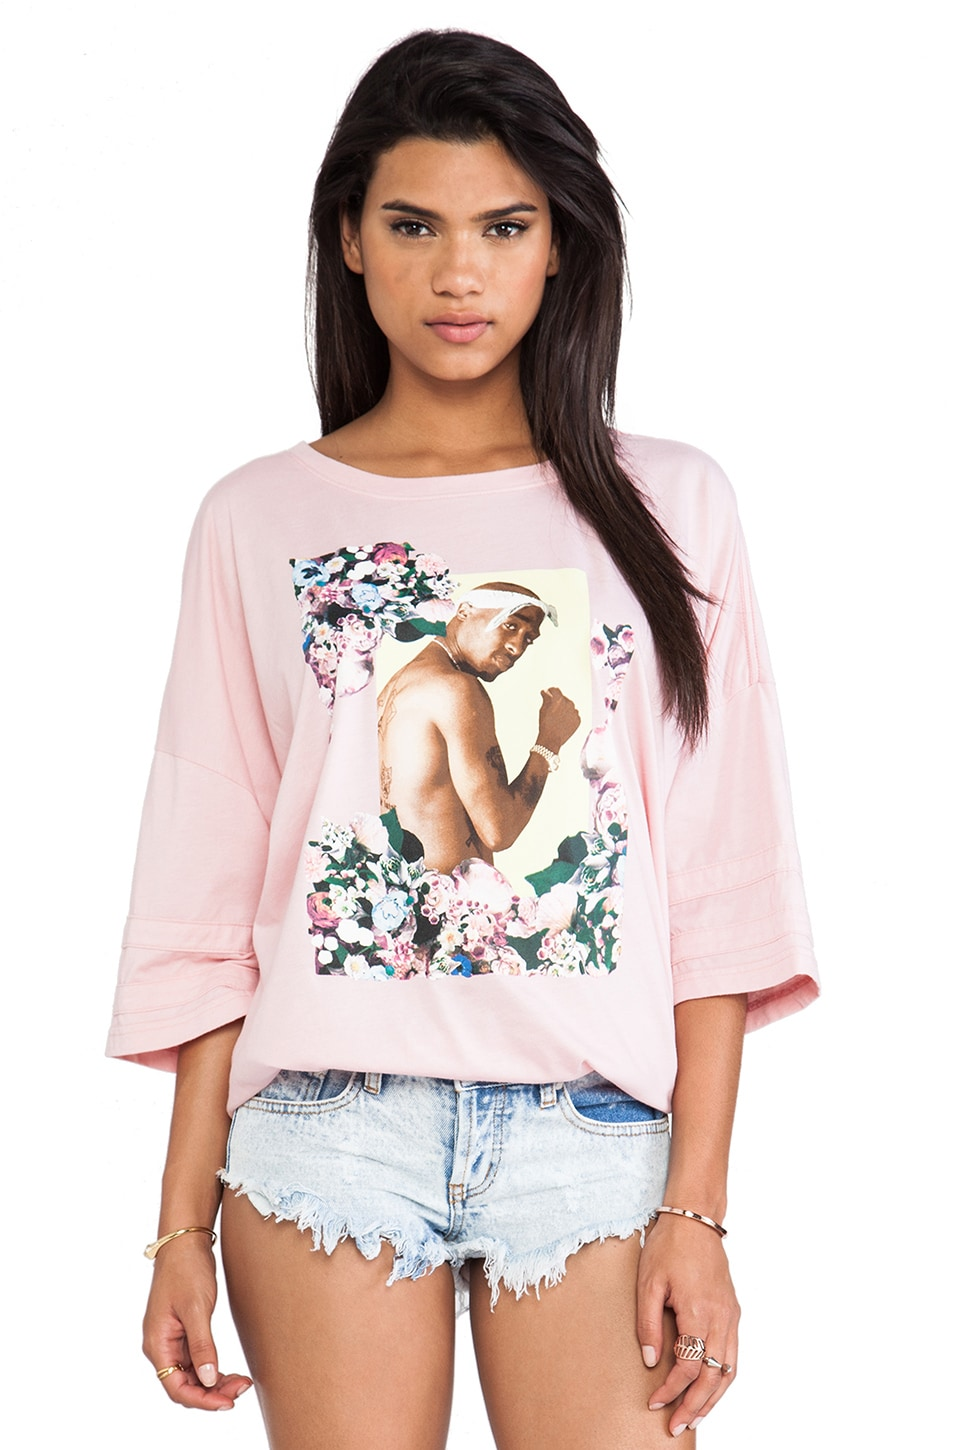 Dimepiece Gangster Chic Oversized Tee in Multi